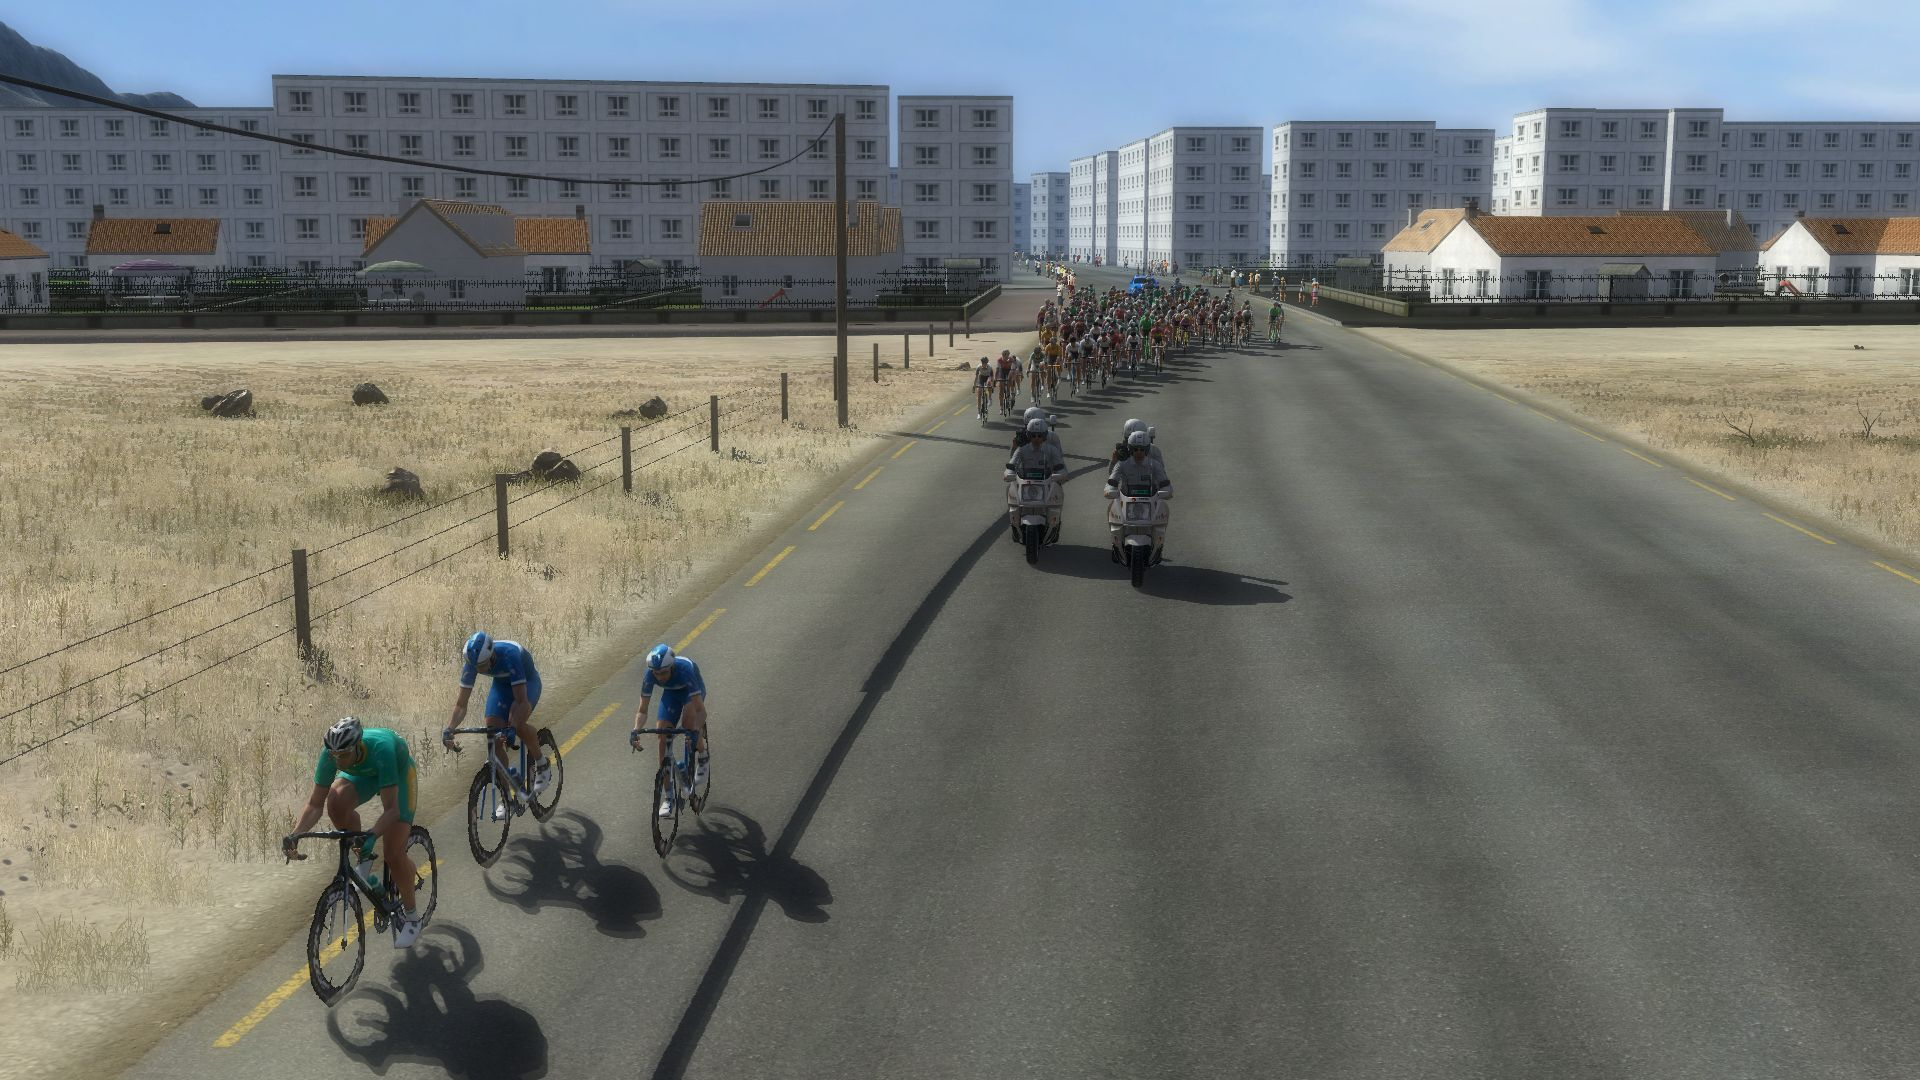 pcmdaily.com/images/mg/2019/Races/C2HC/Eritrea/TOES1%2012.jpg